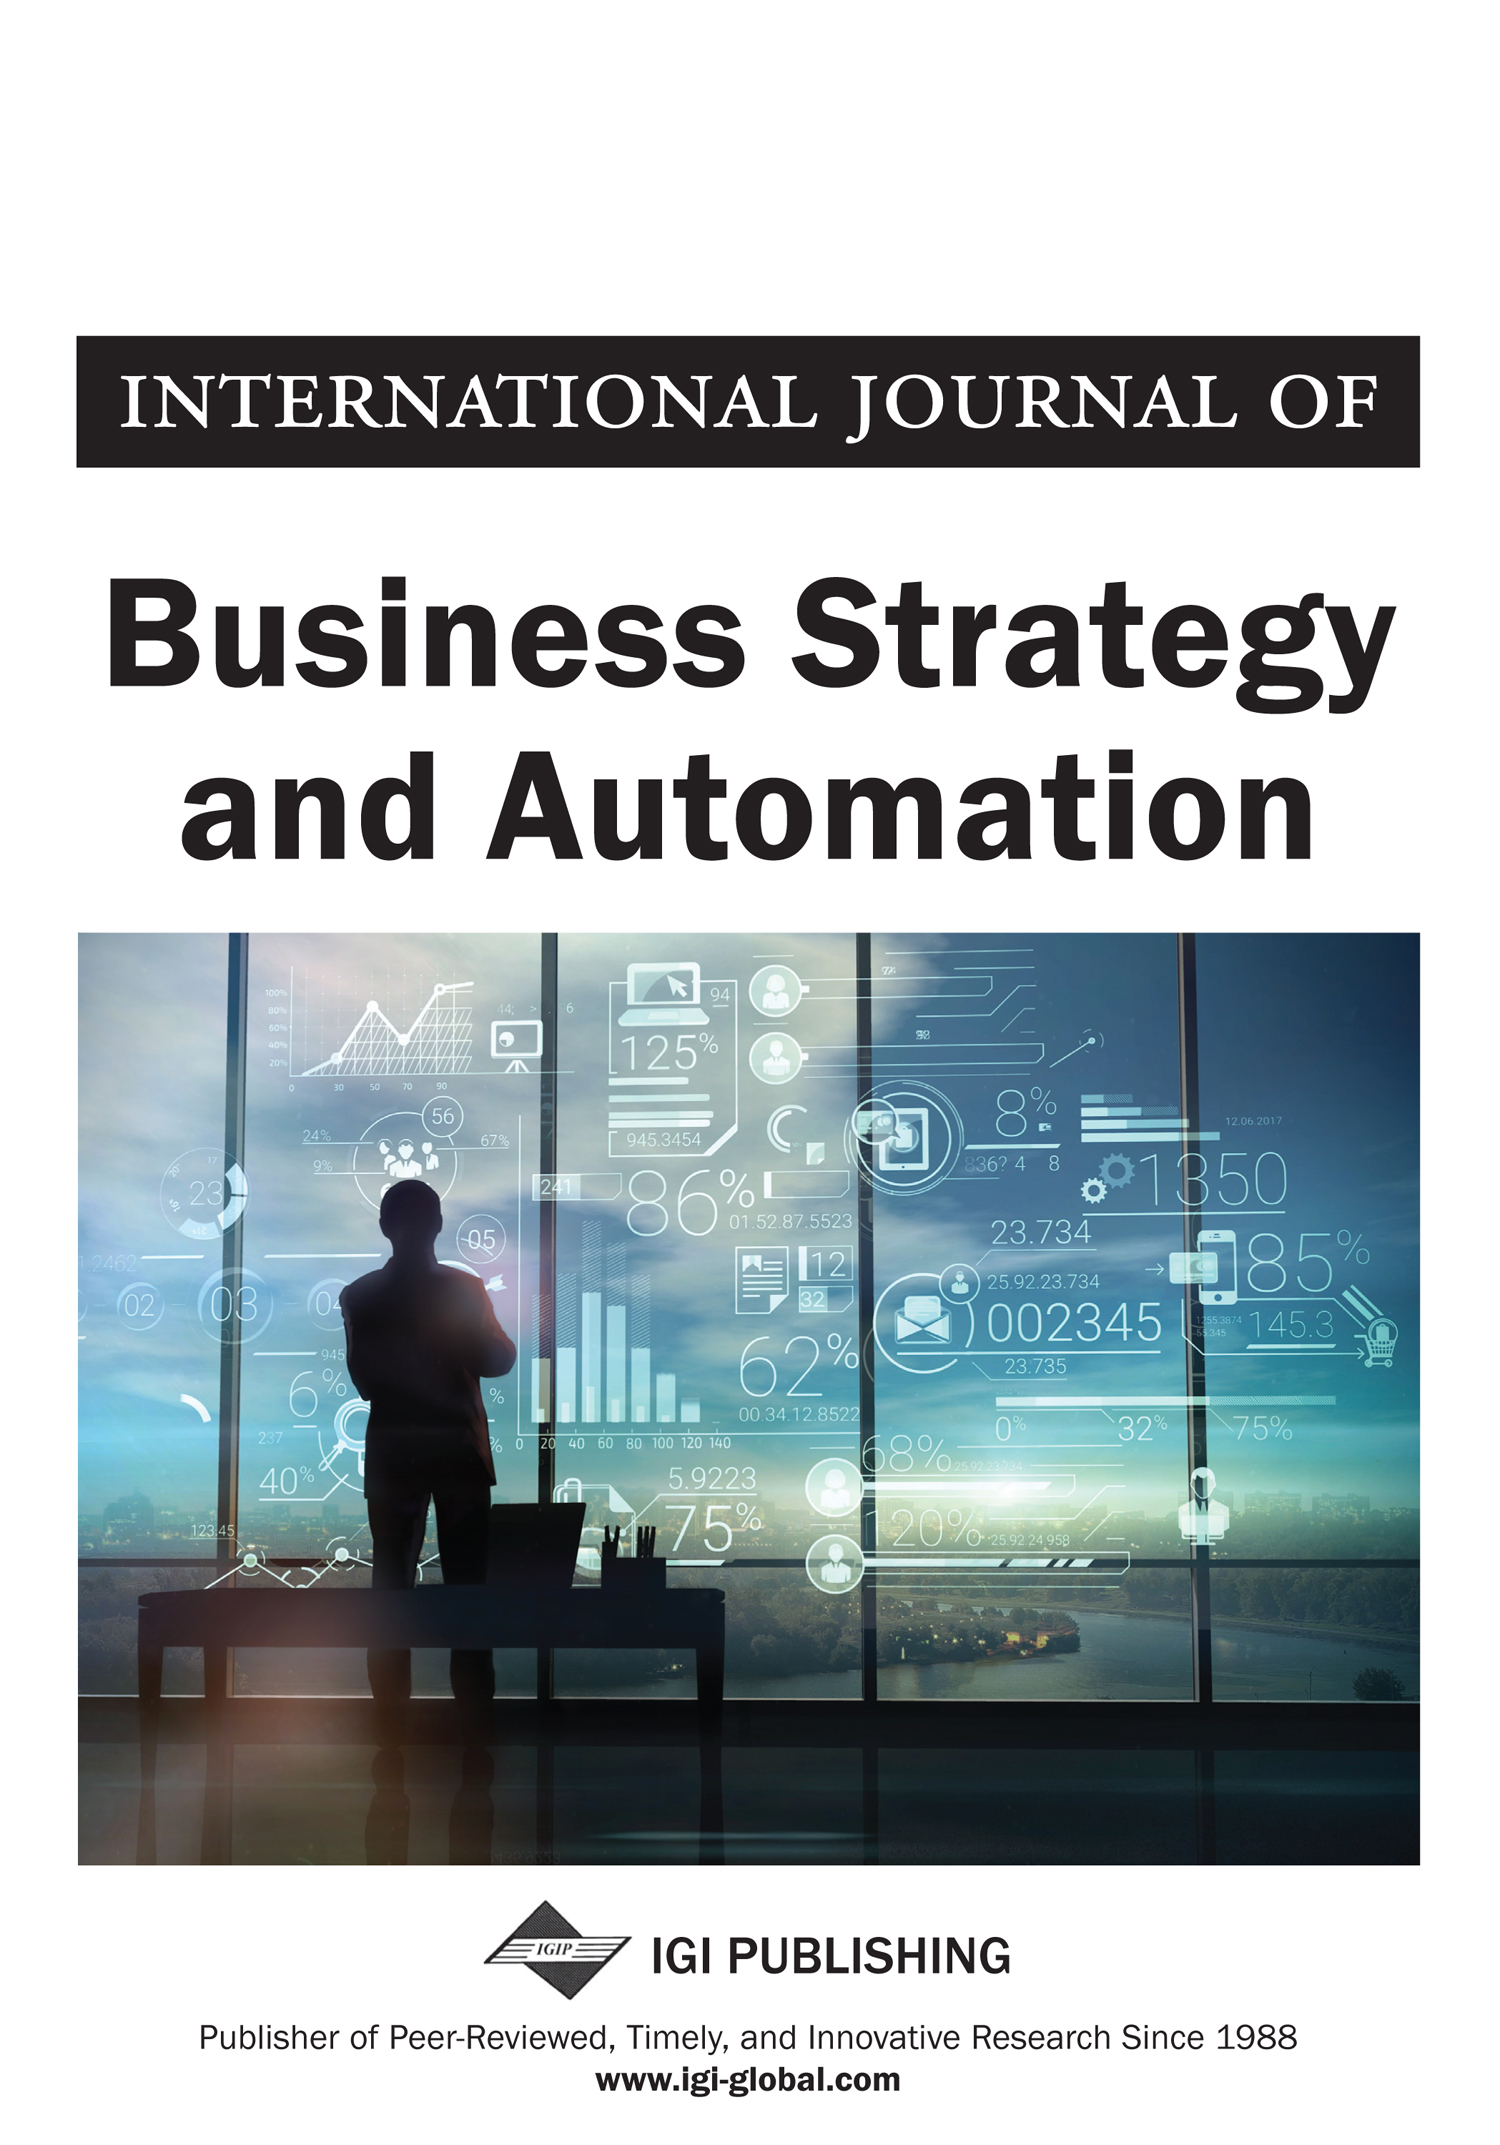 International Journal of Business Strategy and Automation (IJBSA)